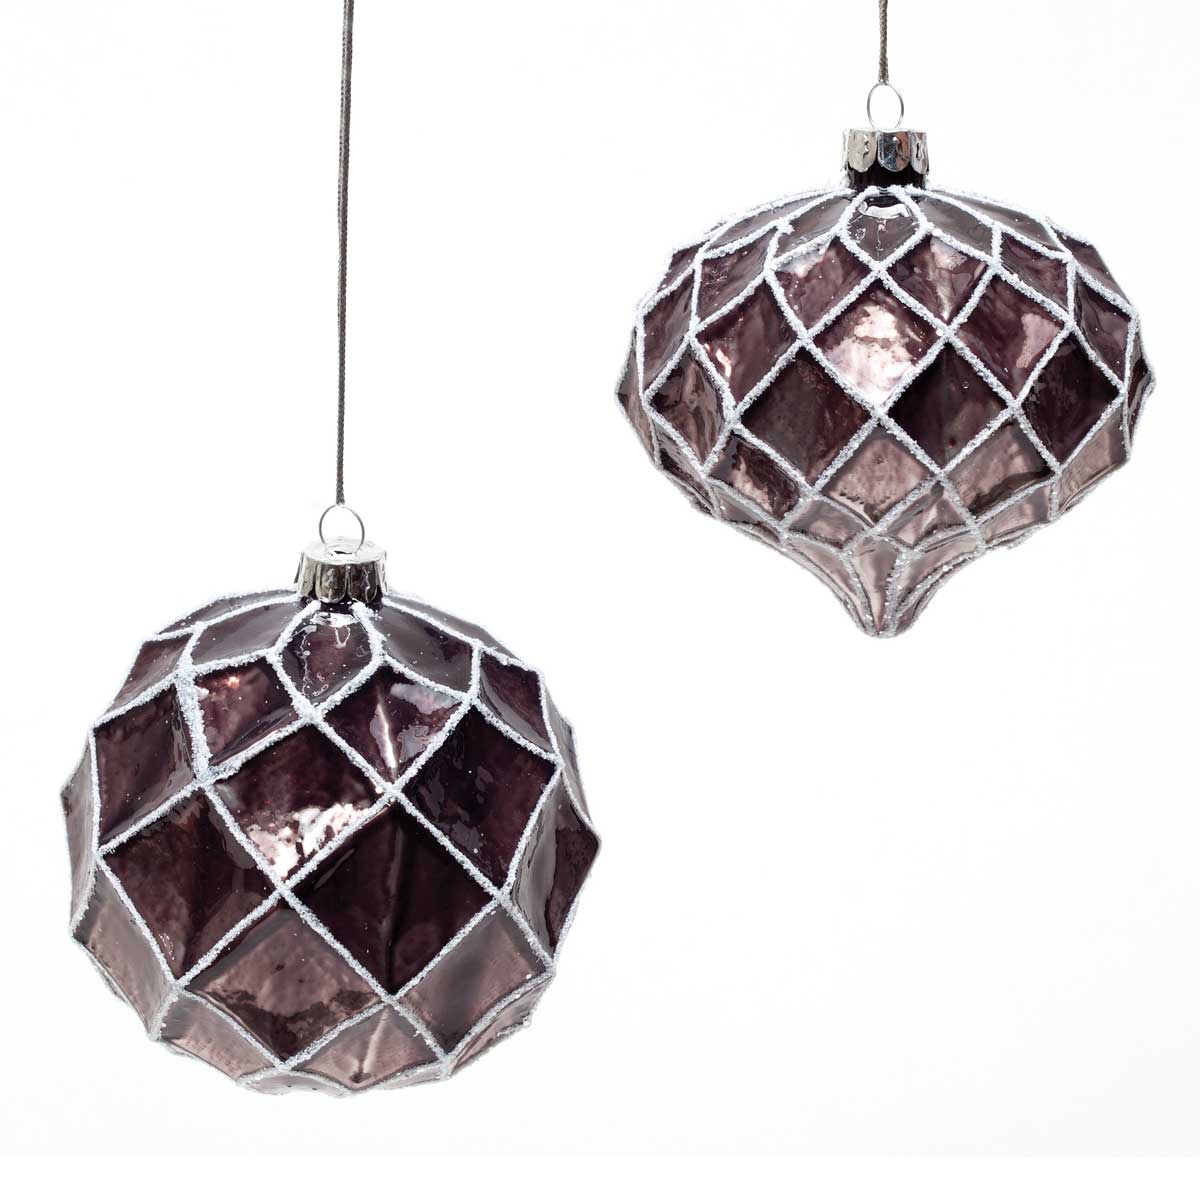 2 Piece Shiny Glass Ball/Kismet Ornament Set